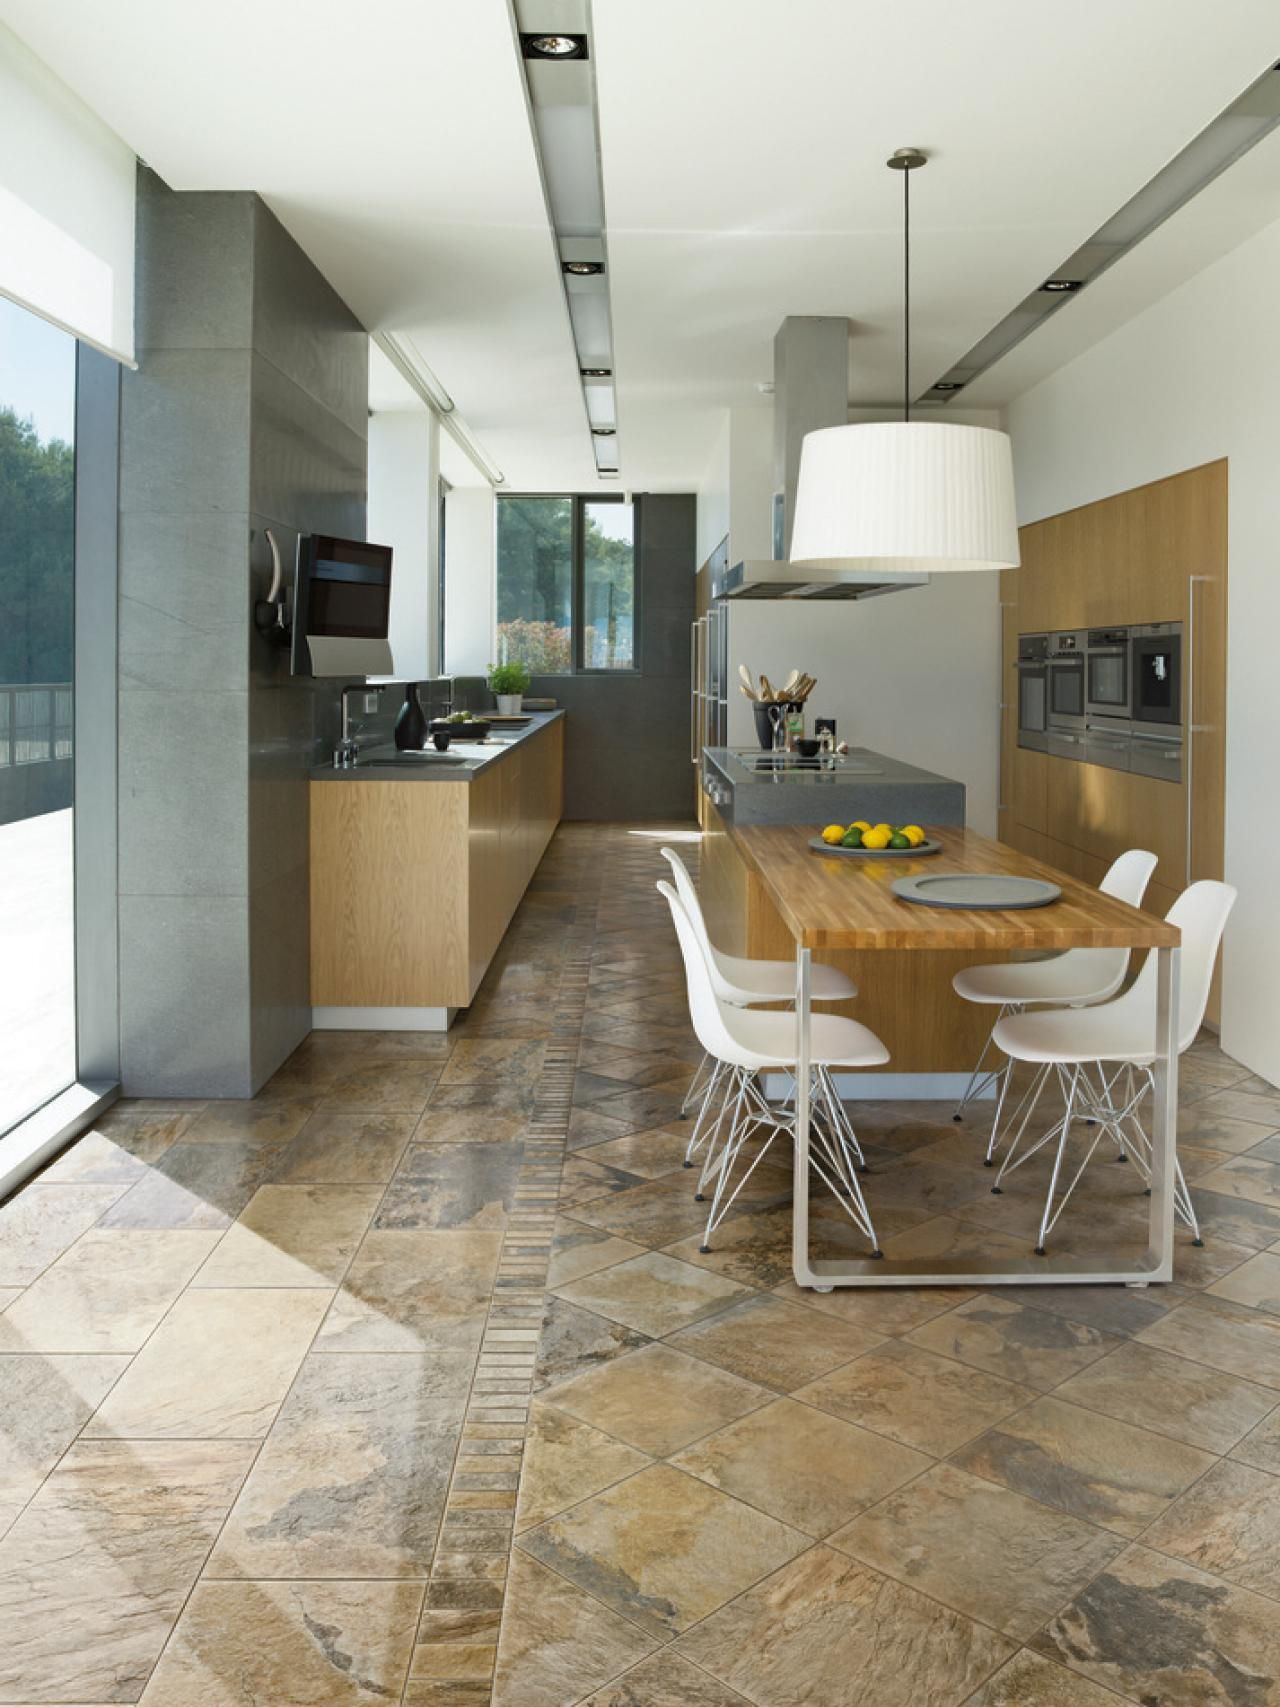 kitchen tile flooring. Brilliant Tile 1 Natural Tones On Kitchen Tile Flooring